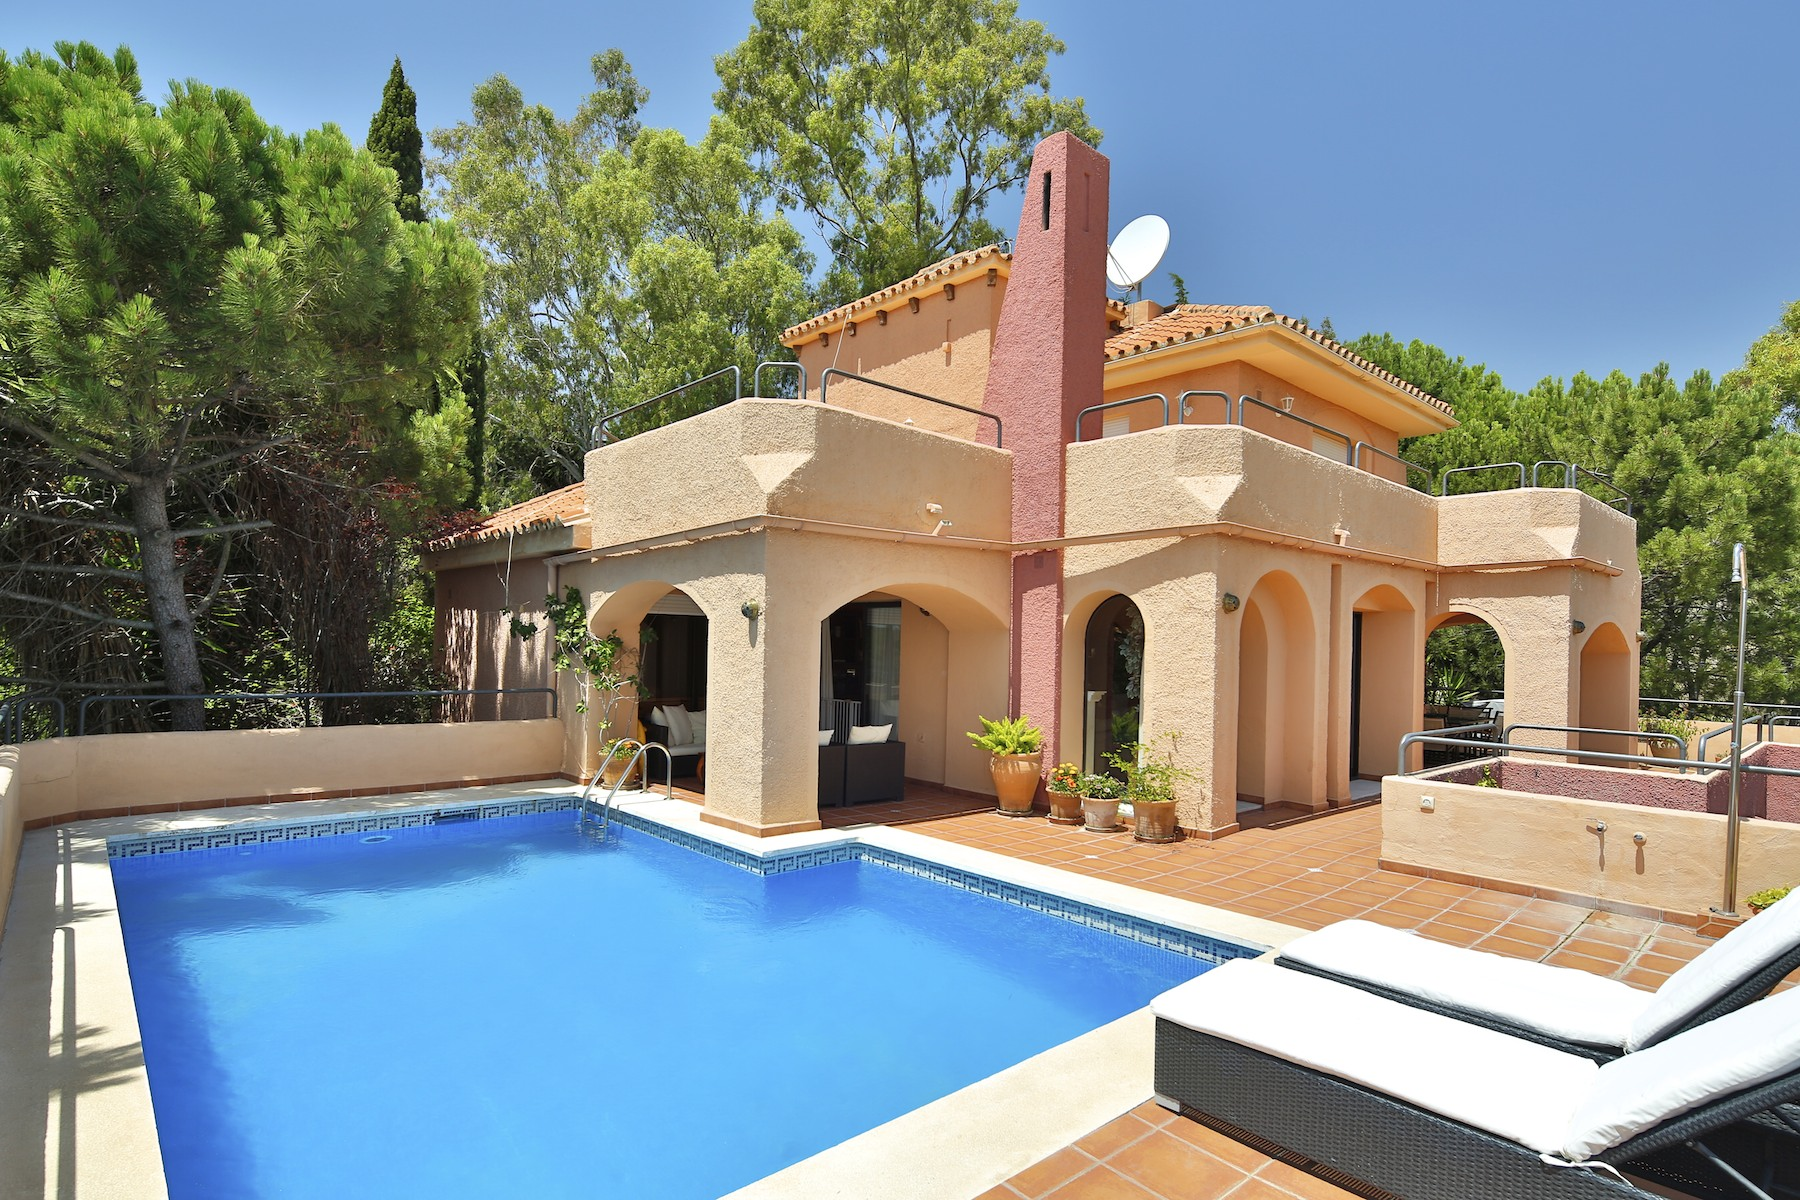 Maison unifamiliale pour l Vente à Charming villa in a gated community of the golf valley Nueva Andalucia Other Andalucia, Andalousie, 29660 Espagne